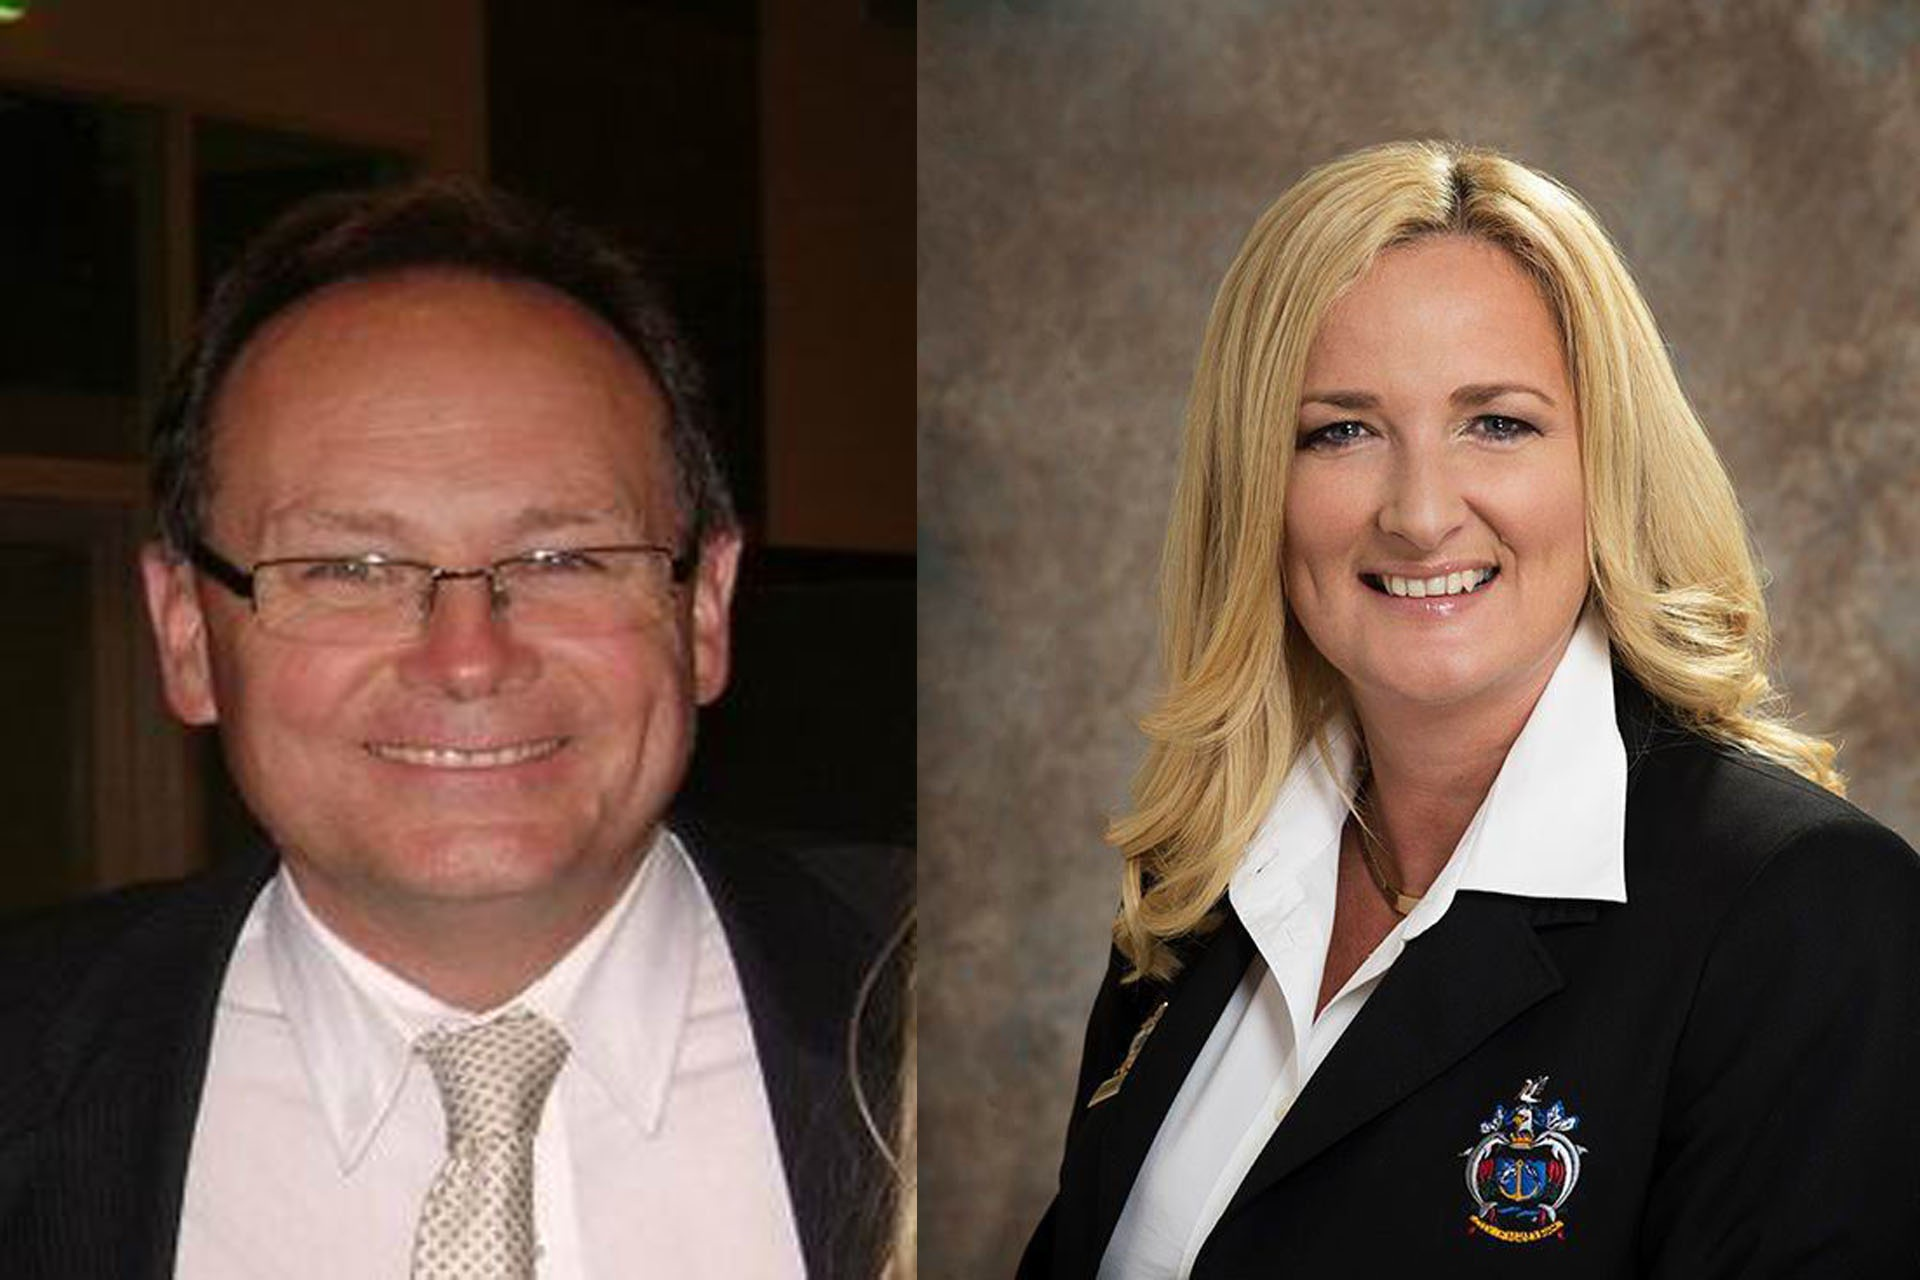 In agreement: Mandurah MLA David Templeman and Mayor Marina Vergone agree there is a strong need for a revised policing model in Mandurah.